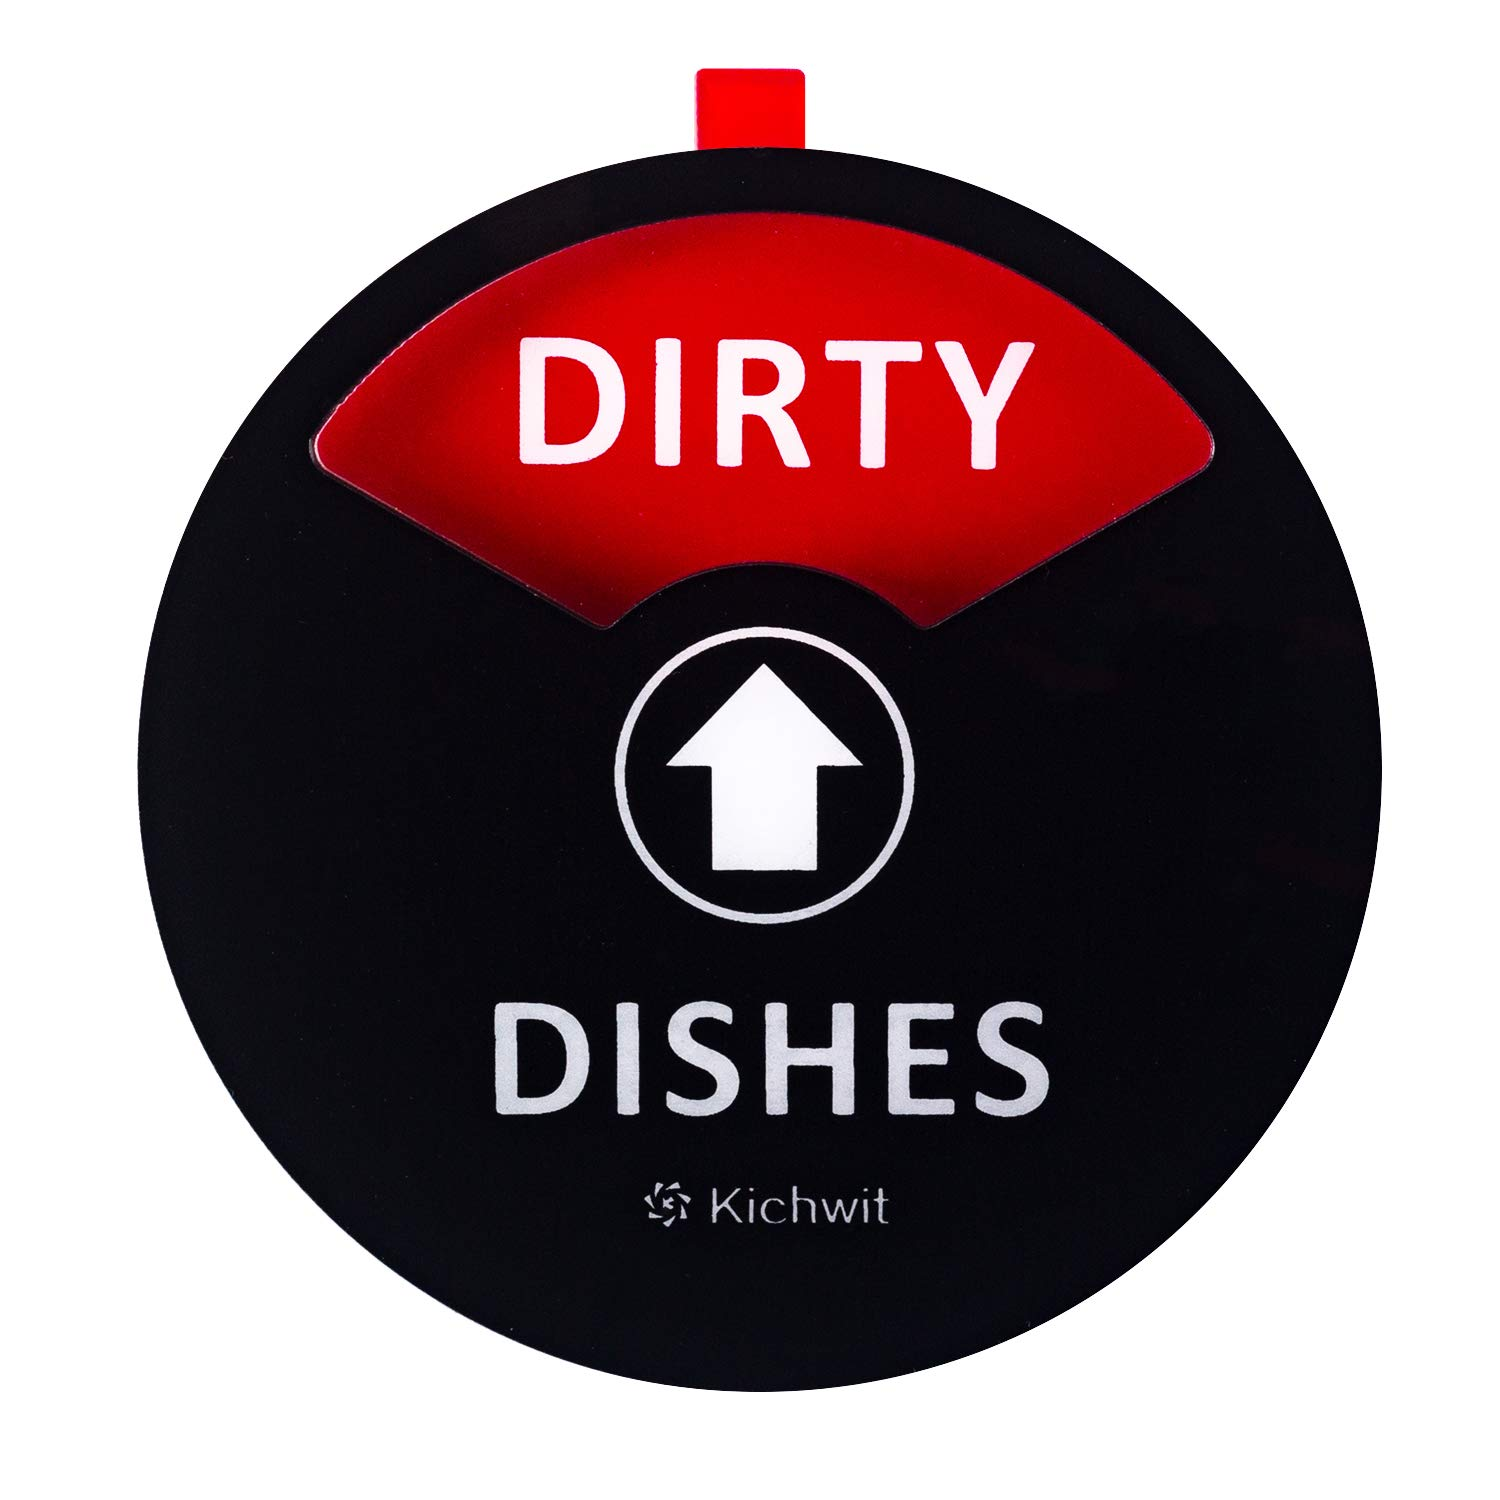 "Kichwit Clean Dirty Dishwasher Magnet with the 3rd Option ""Empty"", Non-Scratch Strong Magnet Backing, Residue Free Adhesive Included, 3.5"" Diameter, Black"